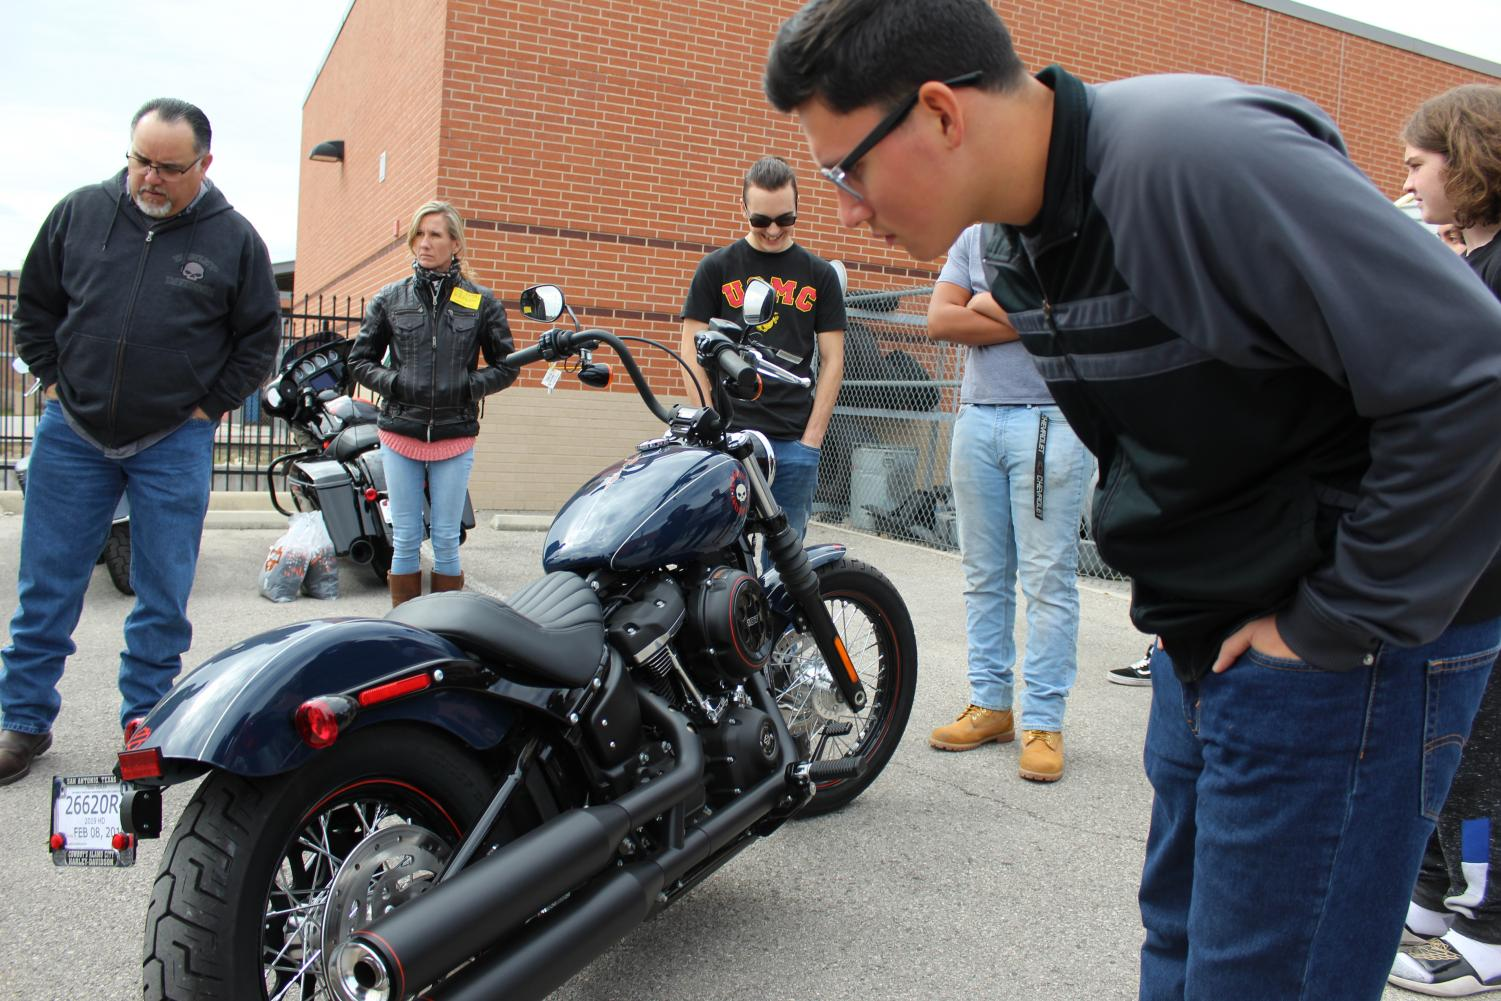 Automotive student examines motorcycle. The Harley-Davidson representatives brought several motorcycles for the students to look at before they started their own design.